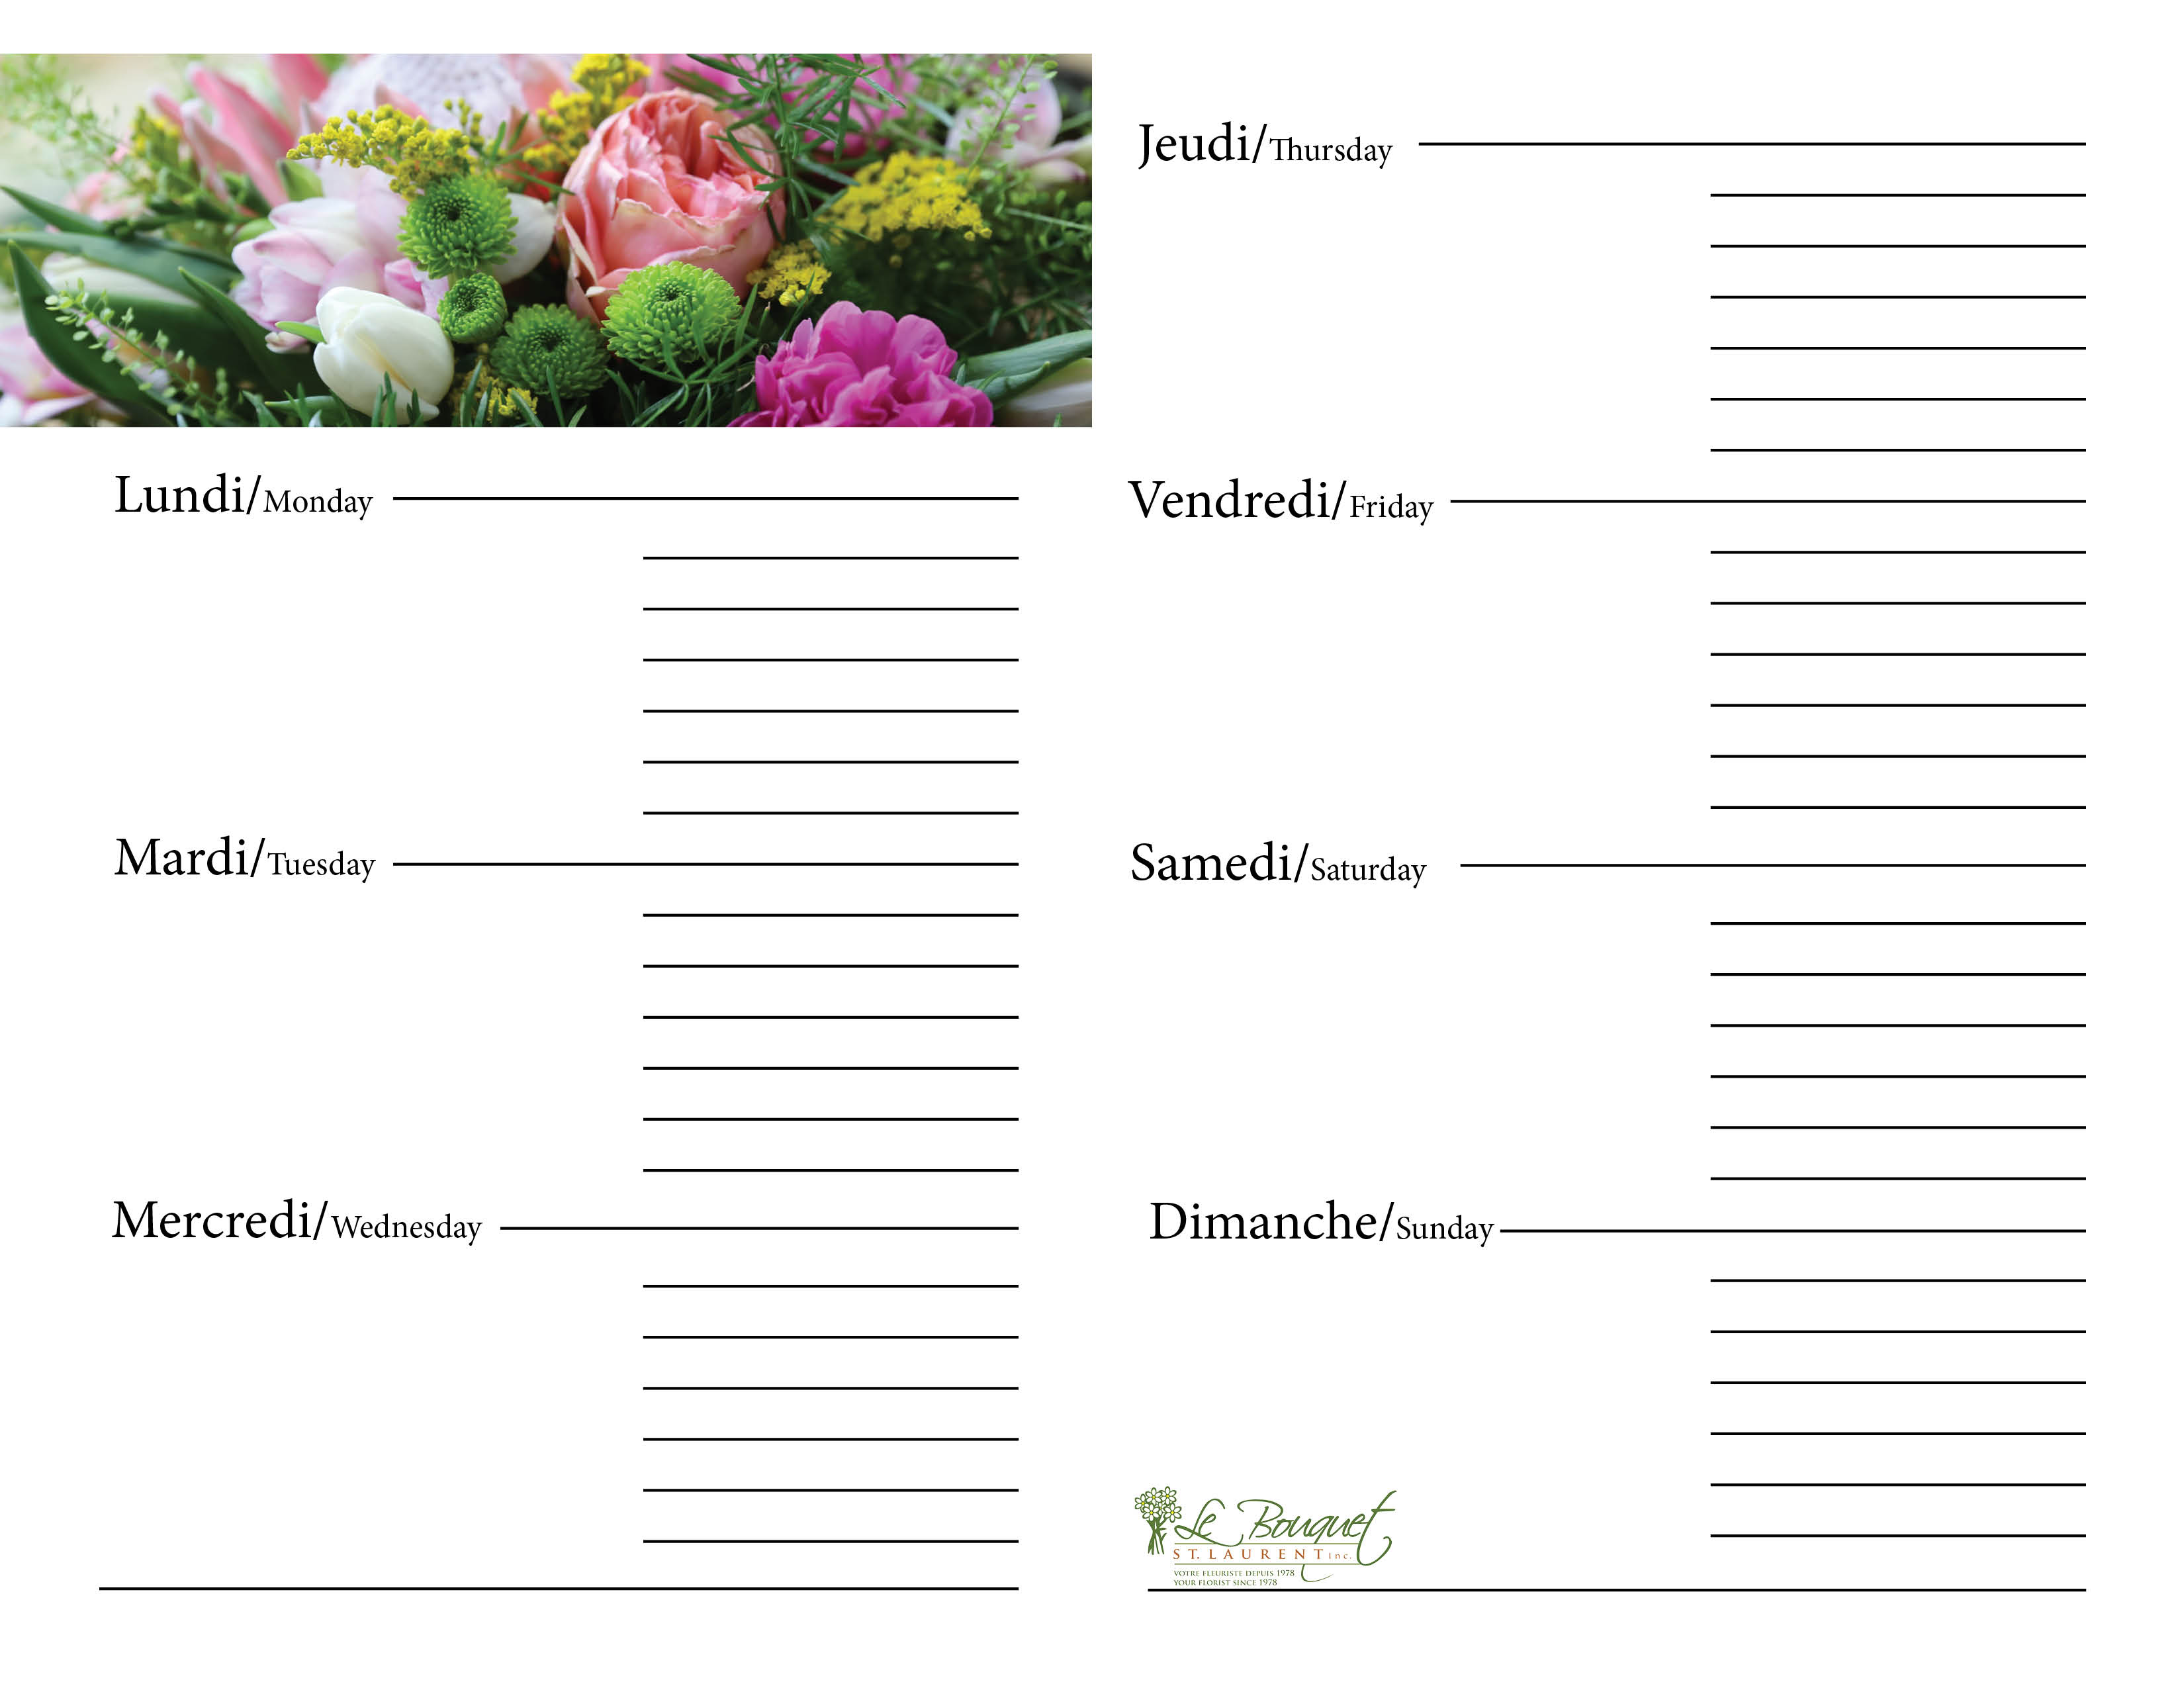 Free downloadable calendar journal with king protea from Montreal flower shop Le Bouquet St Laurent